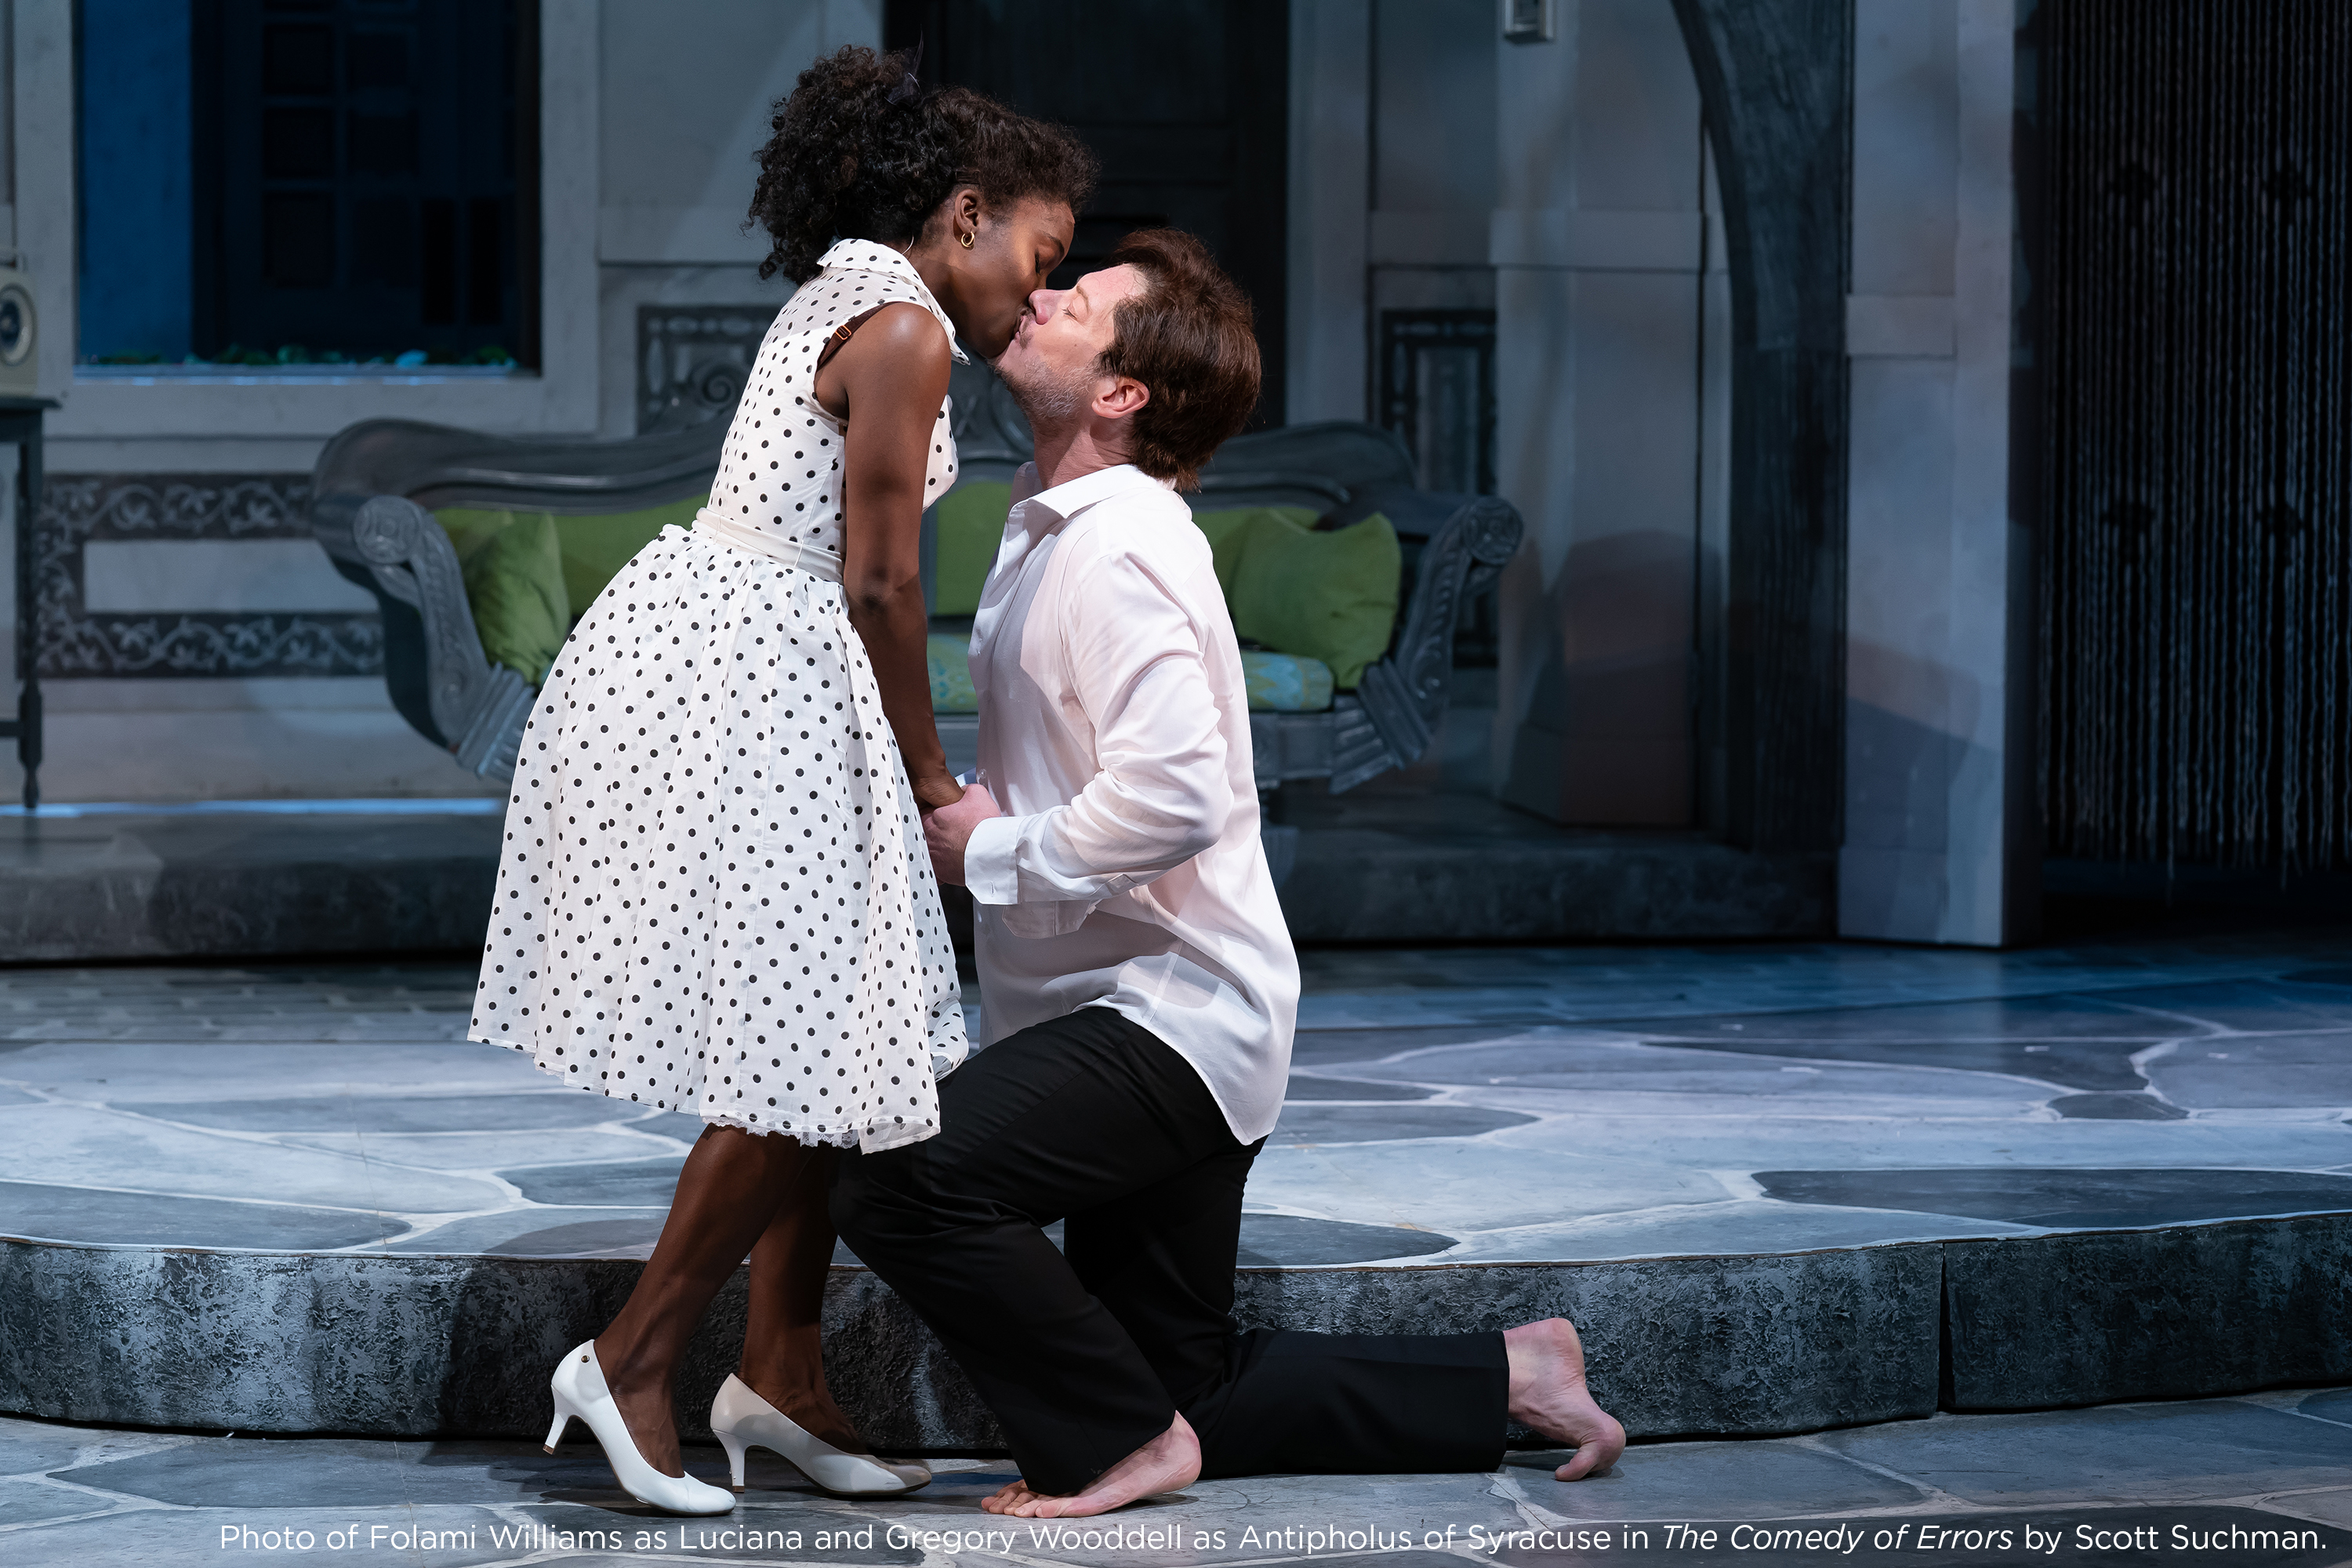 Photo of Folami Williams as Luciana and Gregory Wooddell as Antipholus of Syracuse in The Comedy of Errors by Scott Suchman.